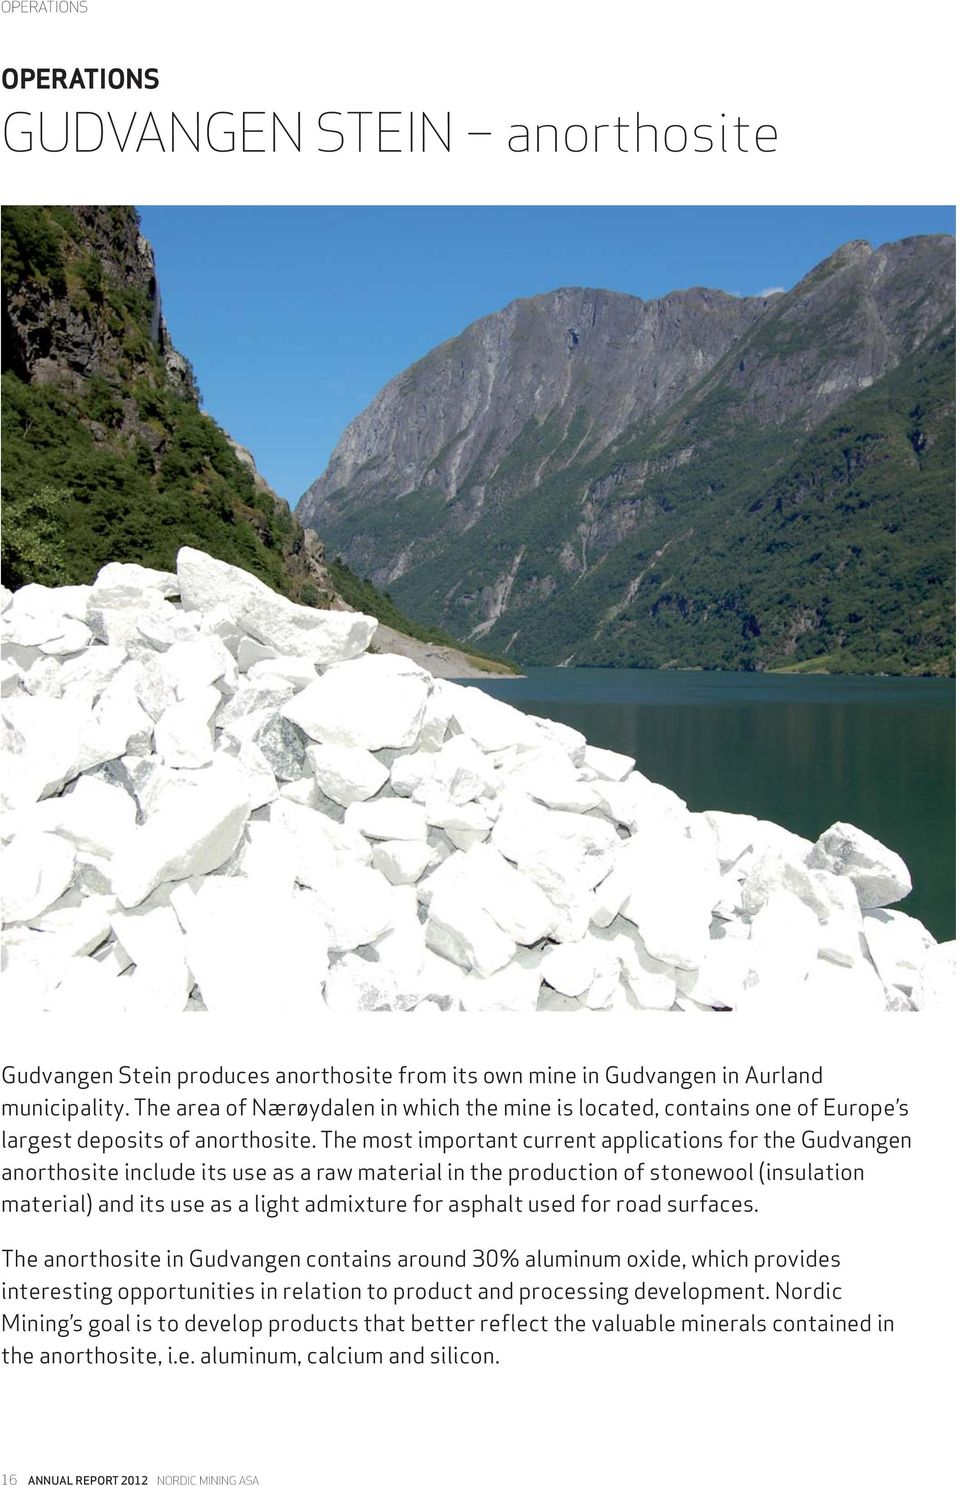 The most important current applications for the Gudvangen anorthosite include its use as a raw material in the production of stonewool (insulation material) and its use as a light admixture for